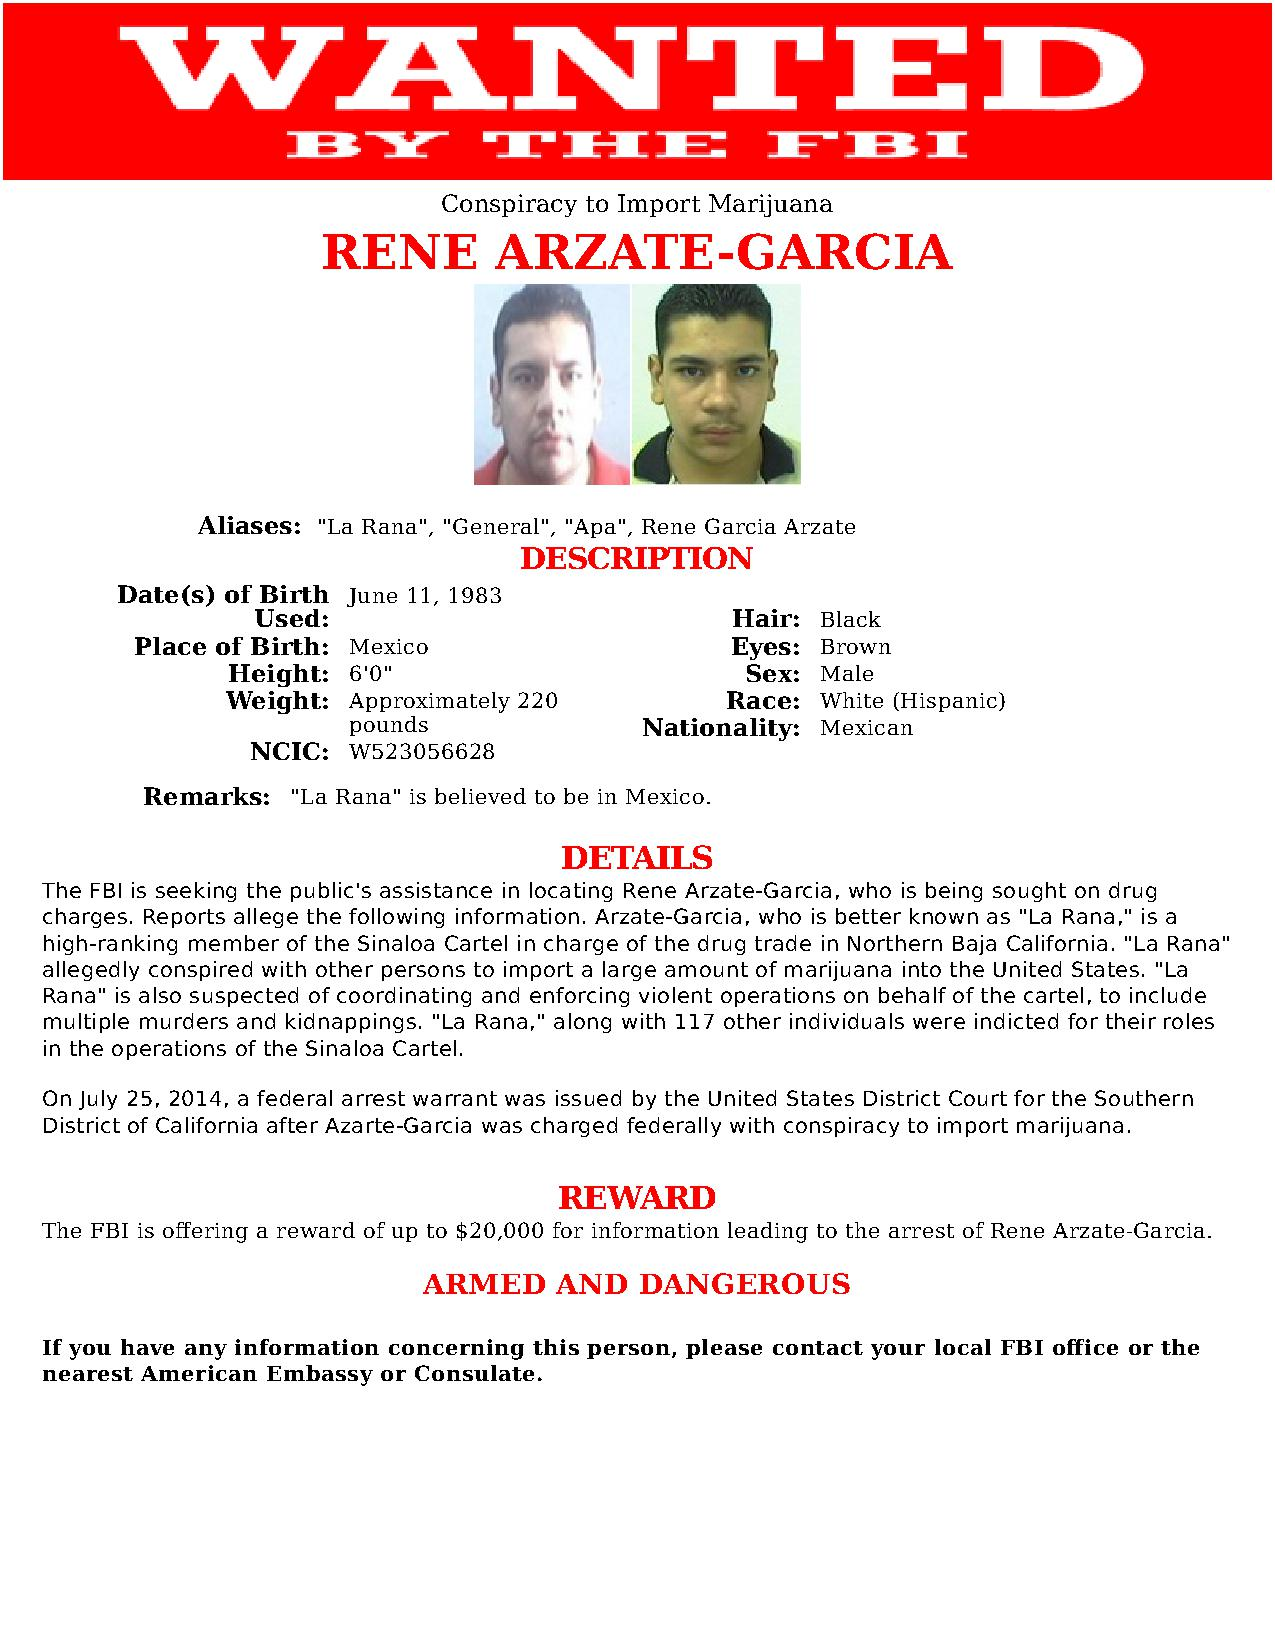 rene-arzate-garcia wanted poster (2)_1